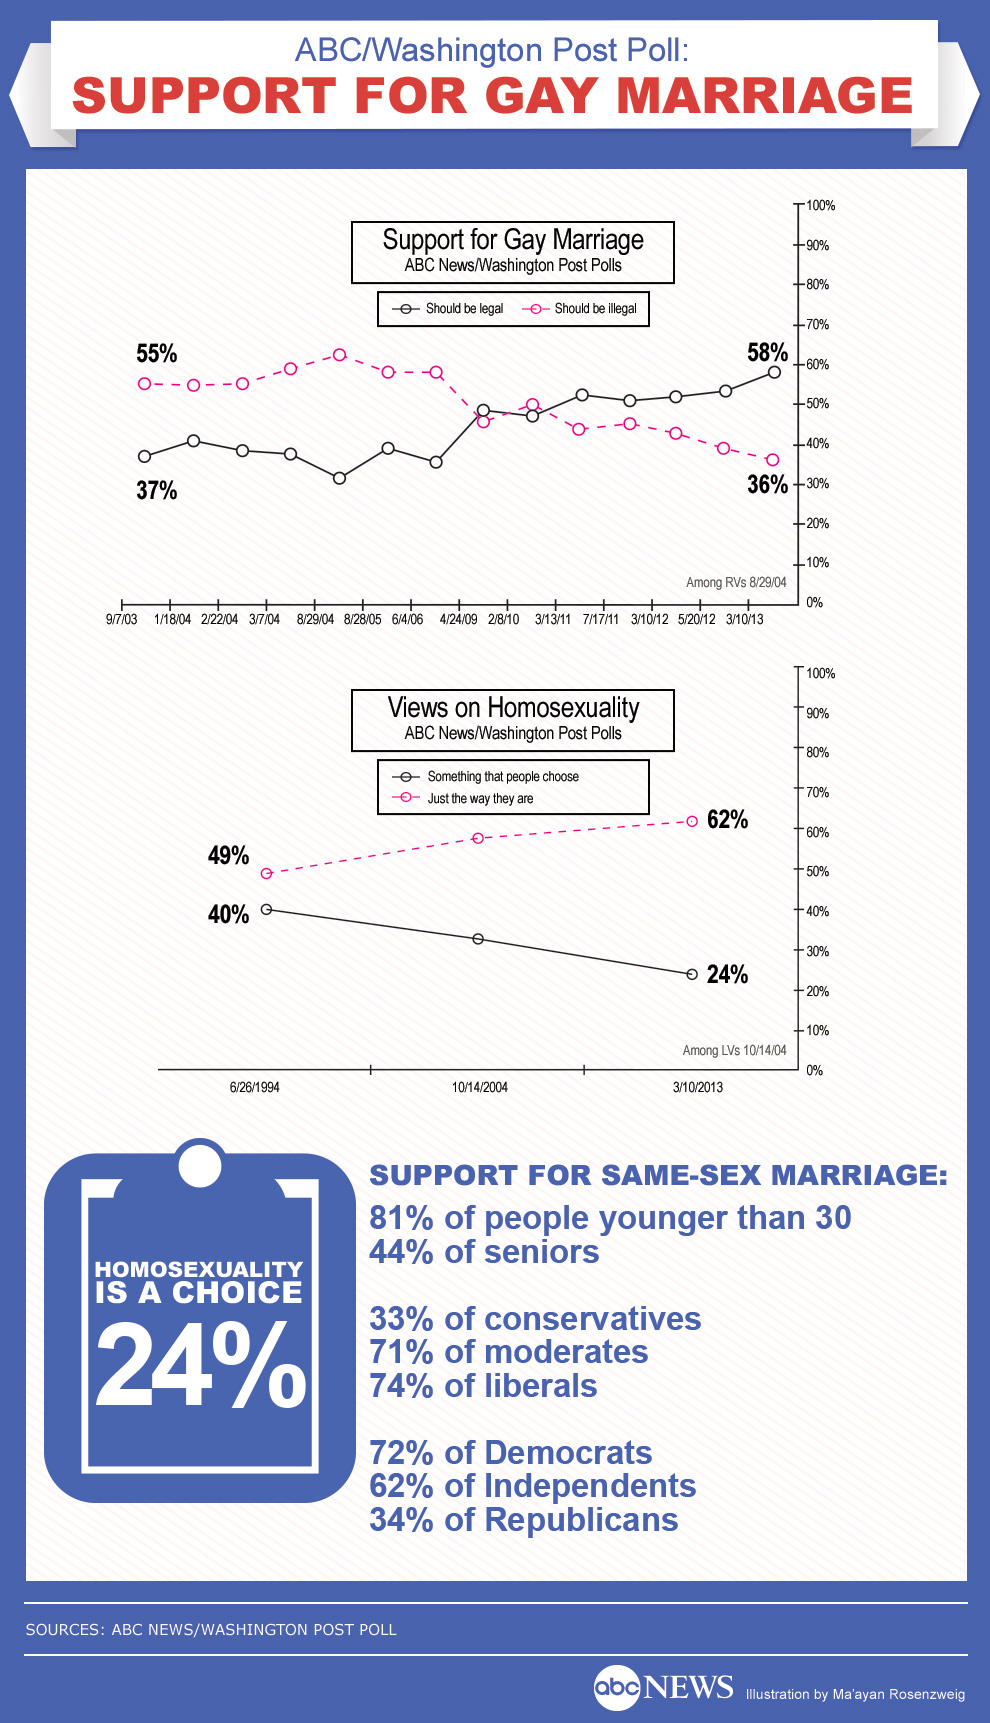 states approving polygamy versus states approving same sex marriages